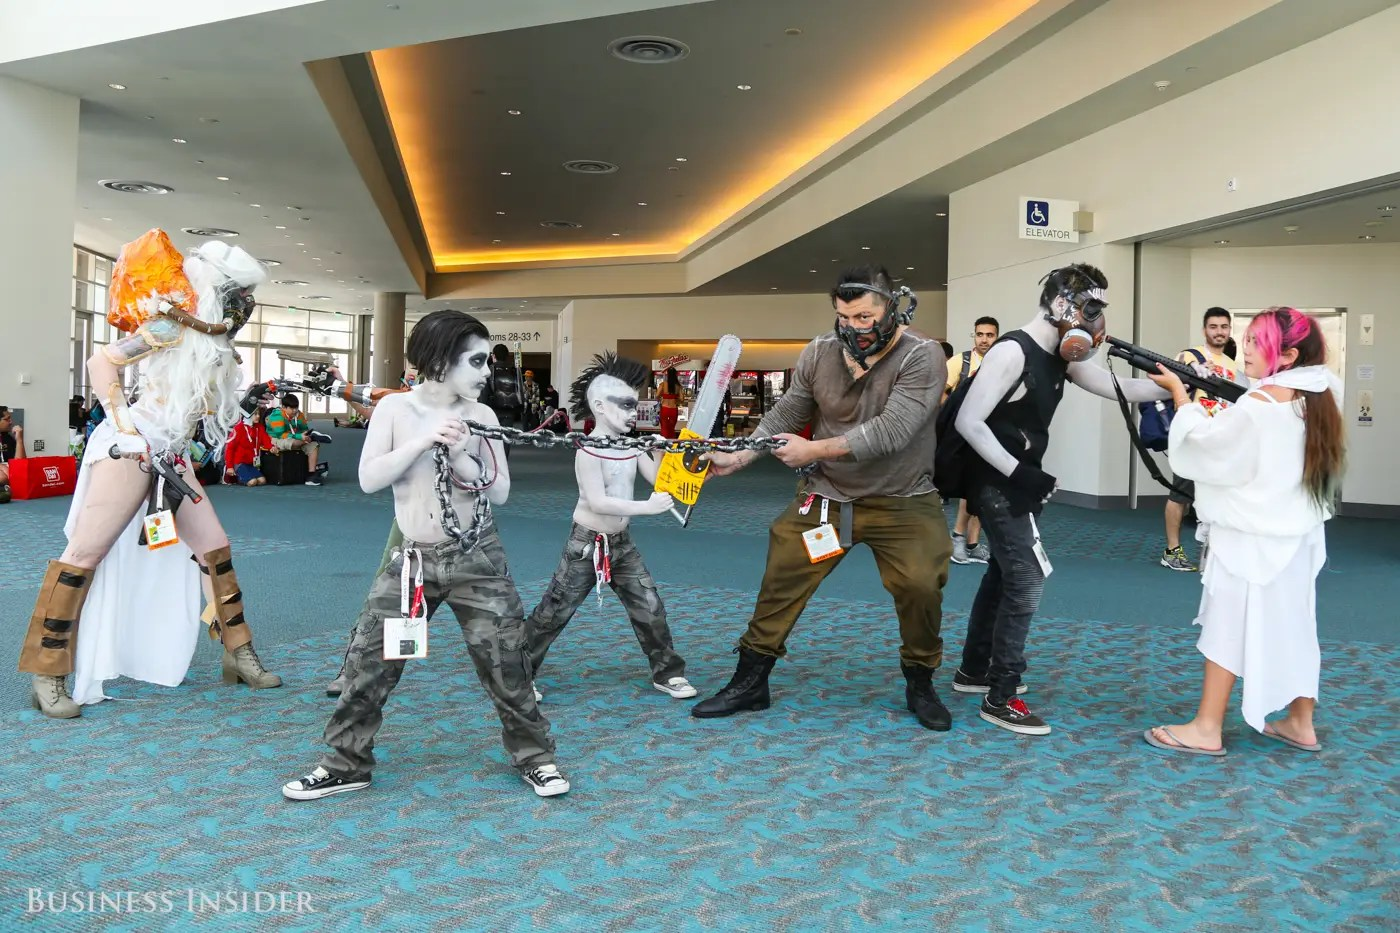 The family that cosplays together, stays together. How cute are these War Boys?